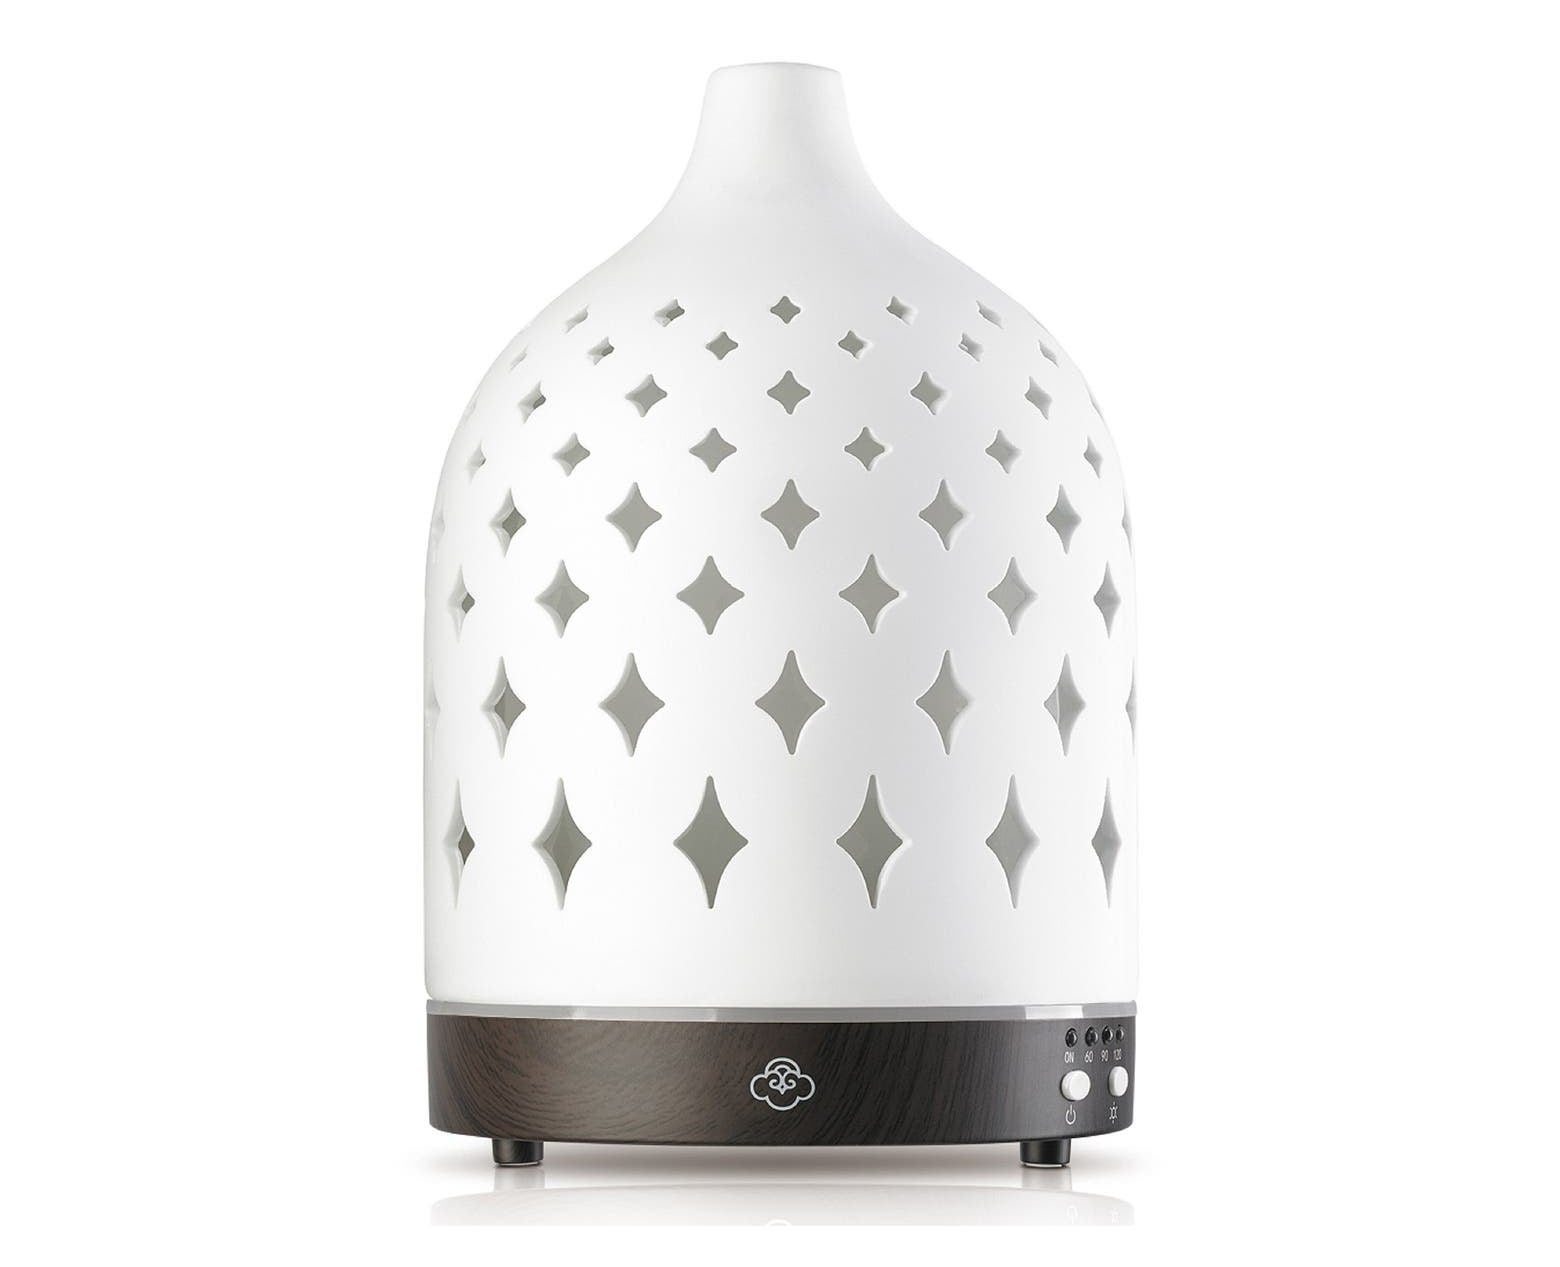 The white diffuser with diamond-shaped cutouts on the side